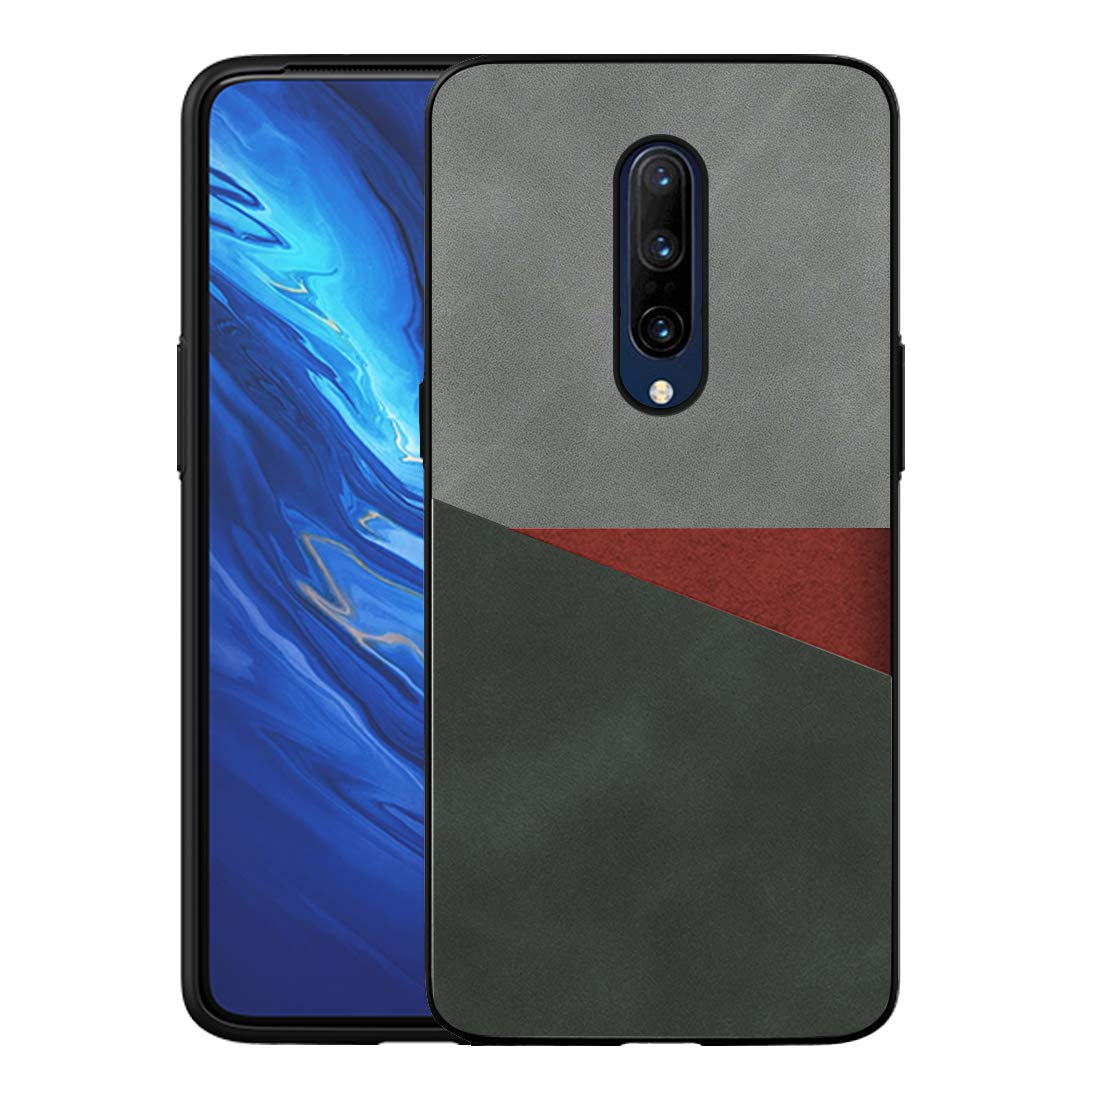 Stuffcool Back Cover Case for OnePlus 7 Pro/One Plus 7 Pro Uni PU Leather Slim Back Cover (Black)